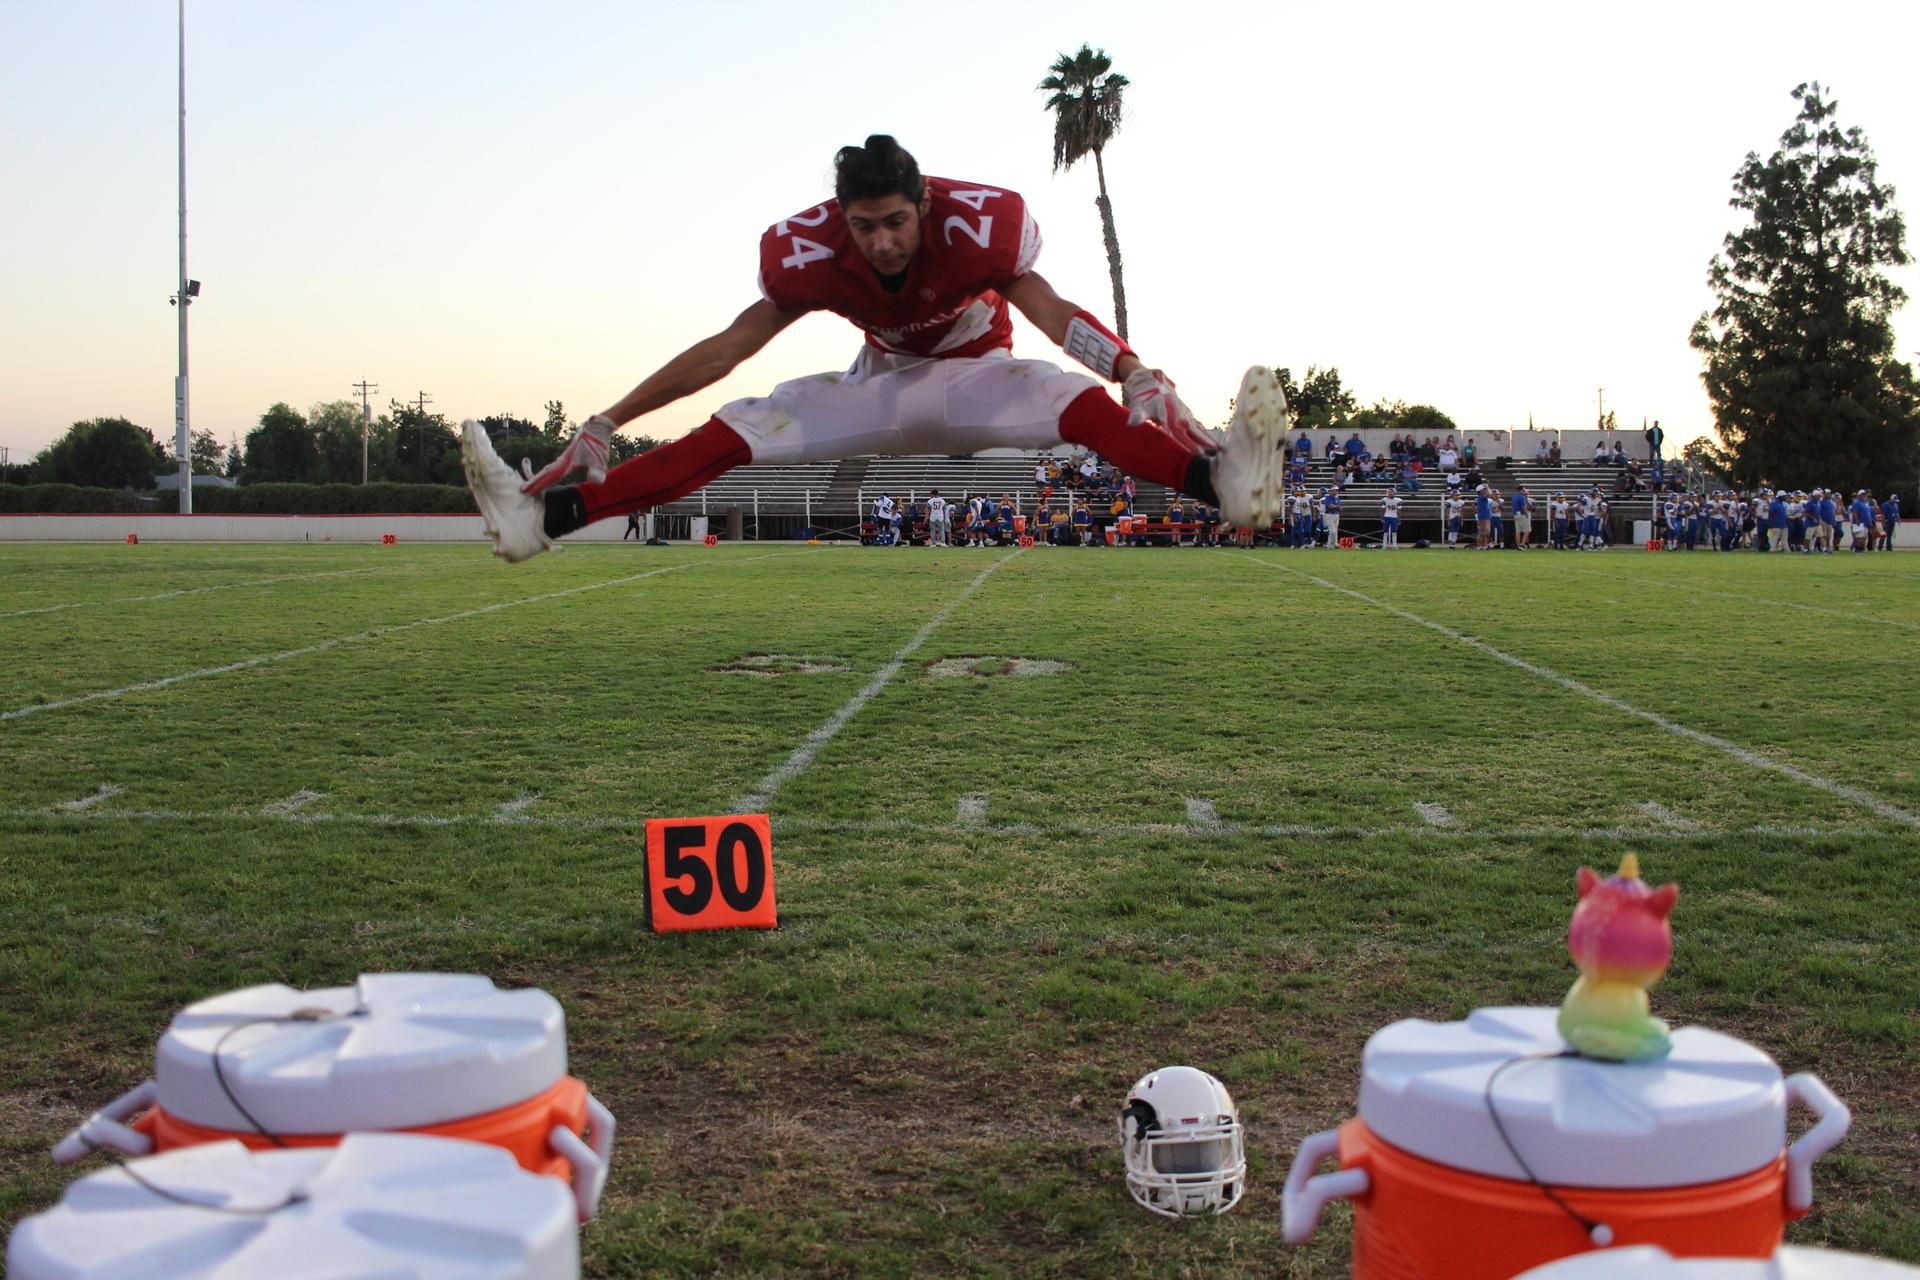 a football player doing a toe touch jump